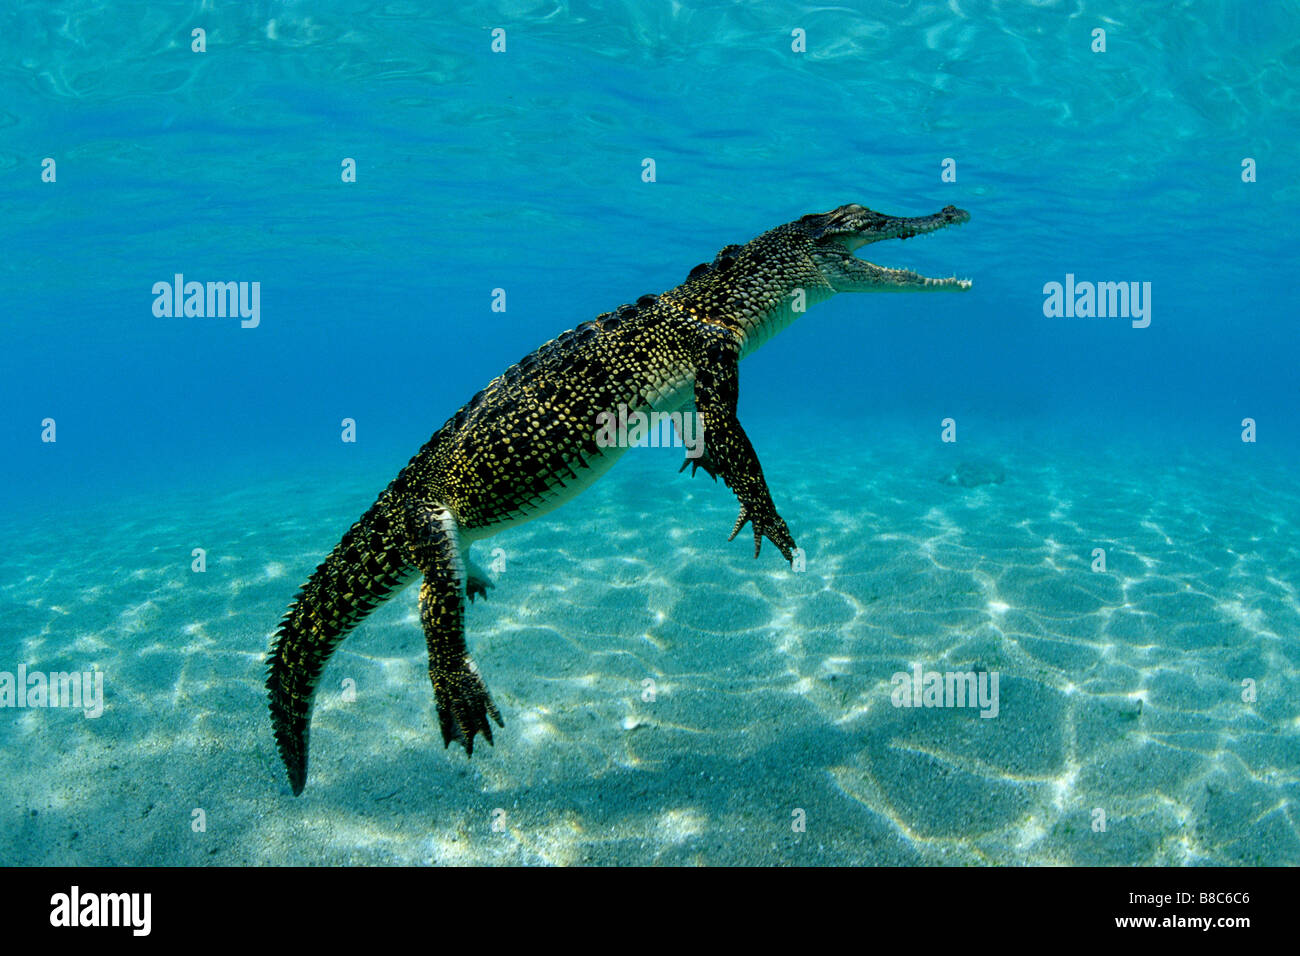 Saltwater crocodile Banque D'Images